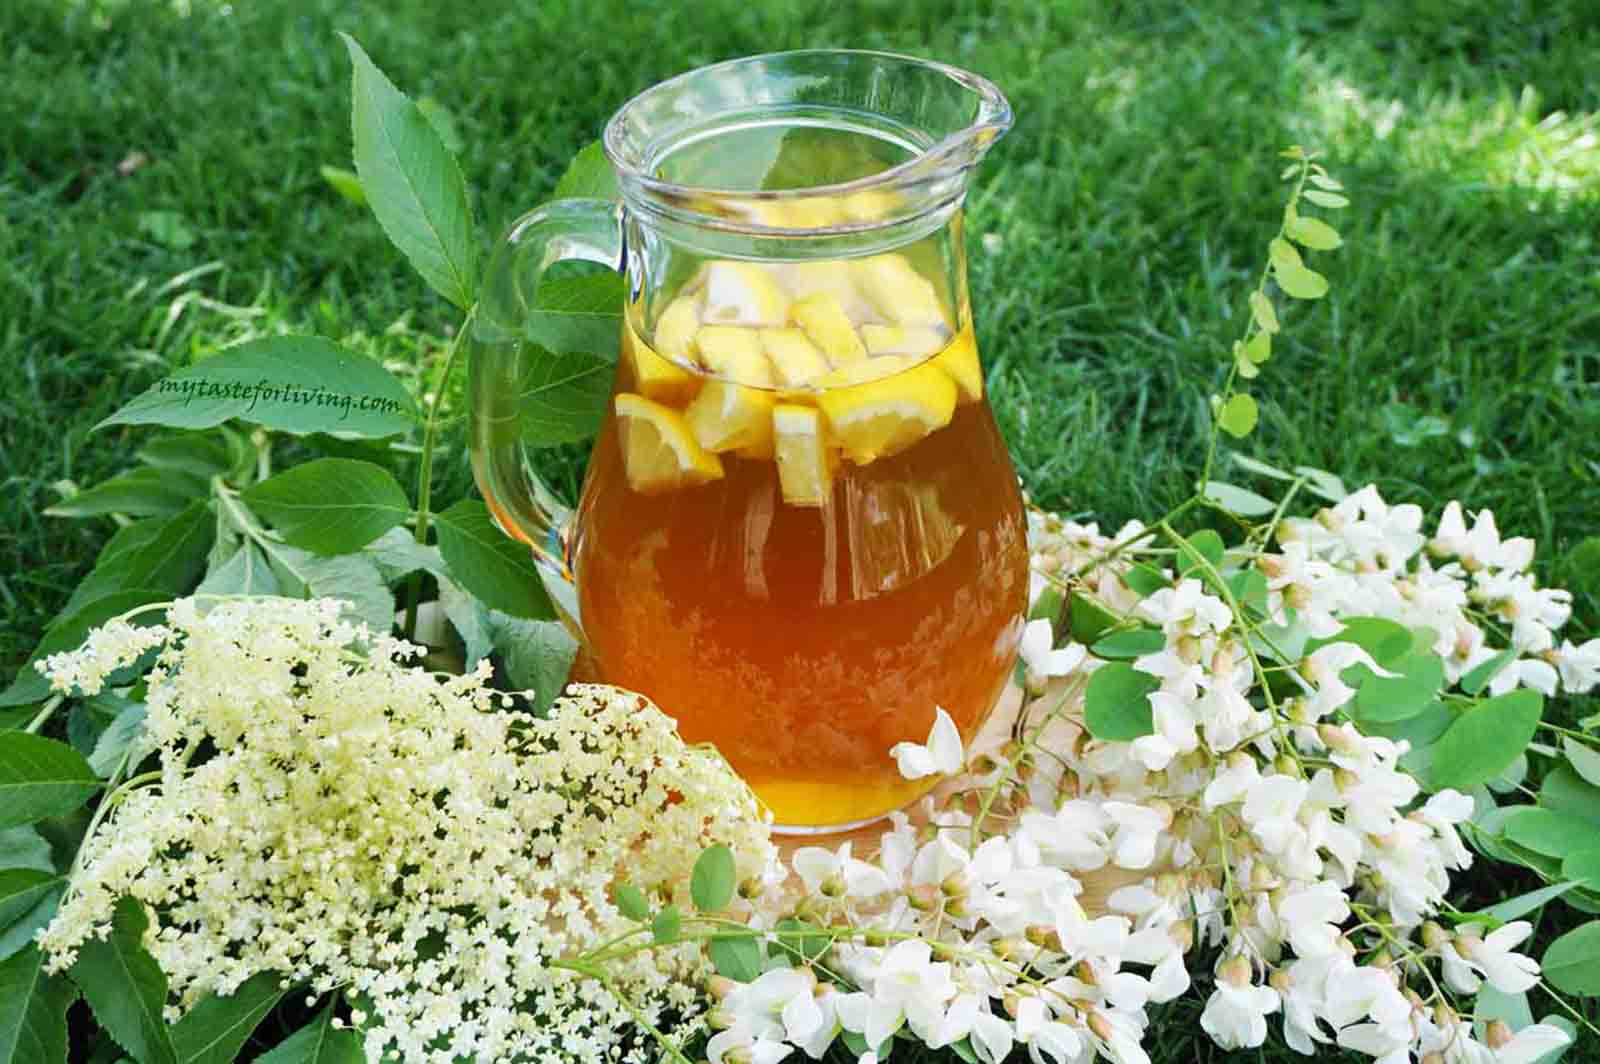 Refreshing drink of white elderflower and acacia flowers, prepared according to an easy recipe, without boiling.